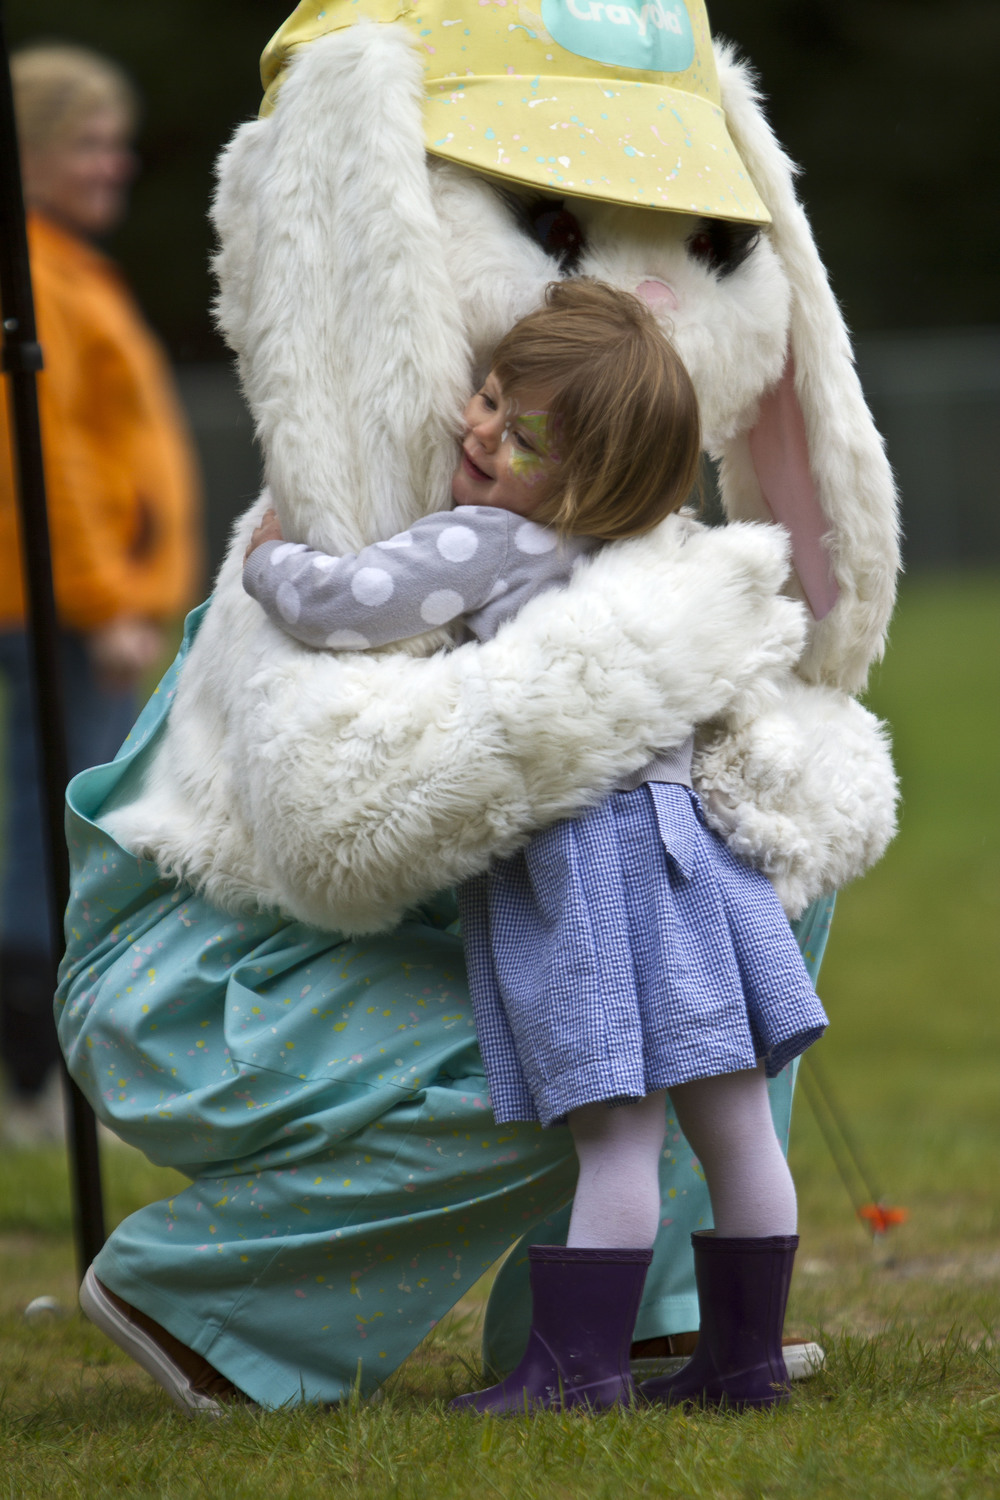 Frankie Rohan, 2, gives the Easter Bunny a big hug at the annual Easter egg hunt at Strawberry Hill Park Saturday.